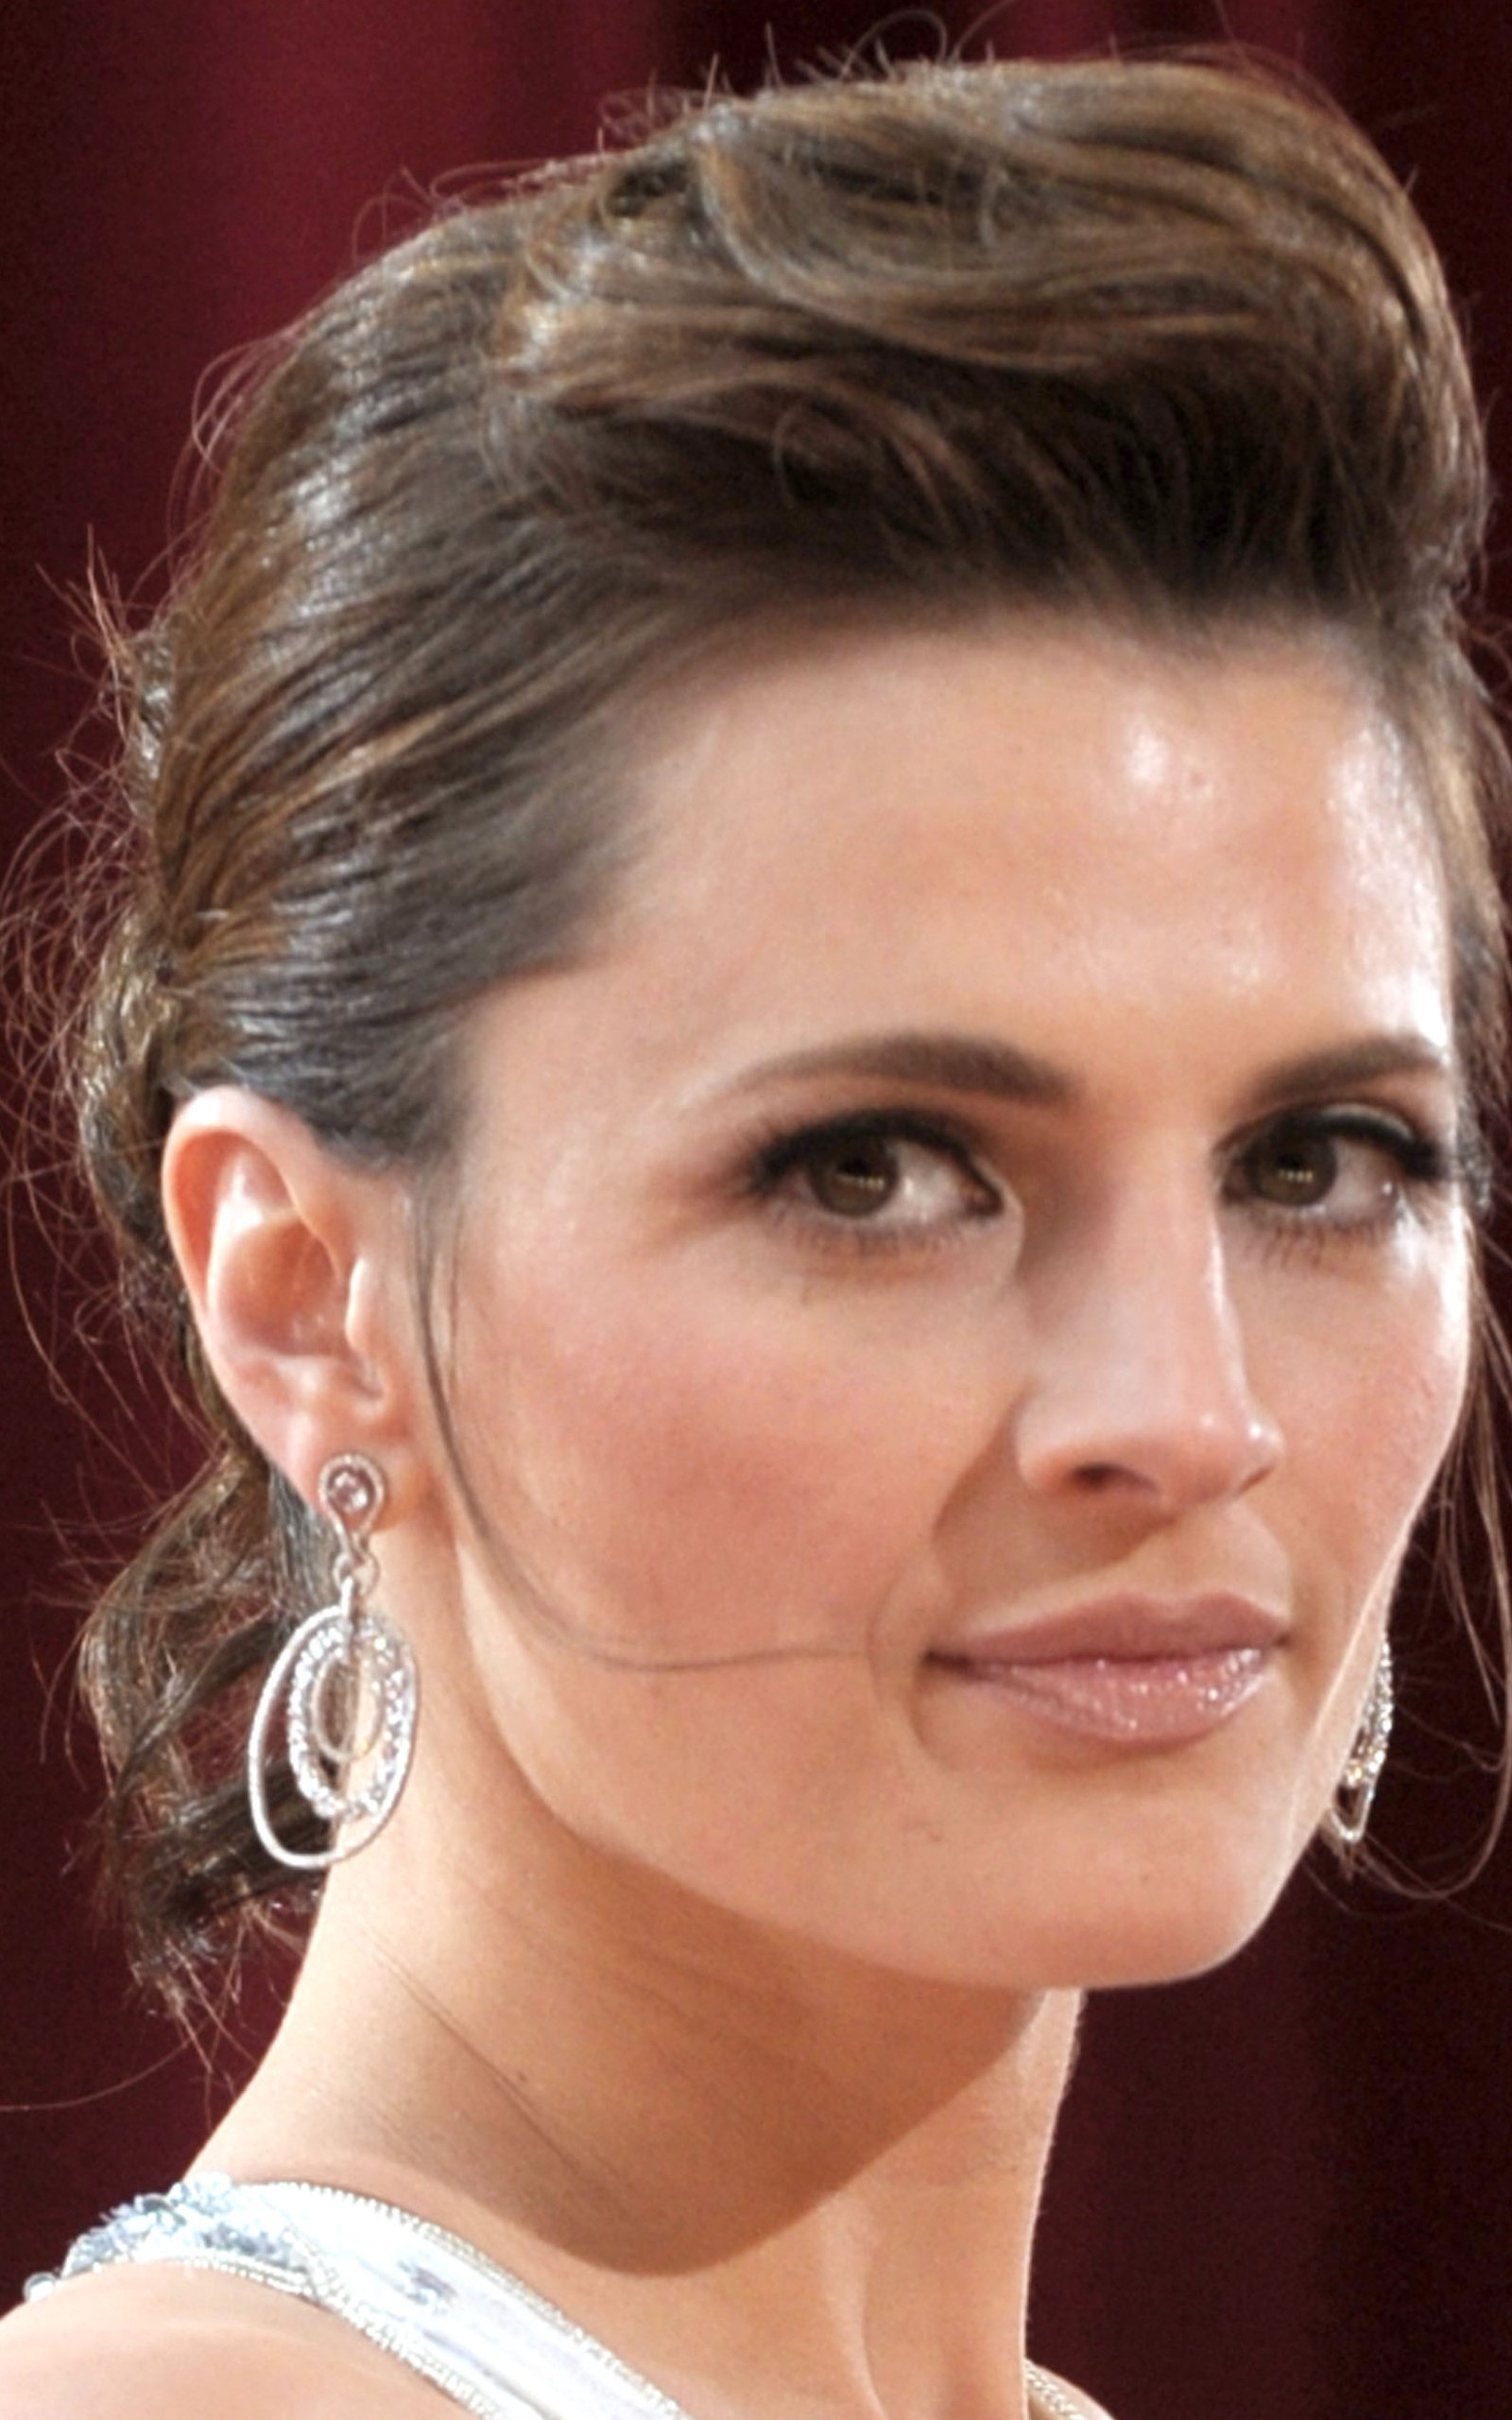 Stana Katic - Images Gallery